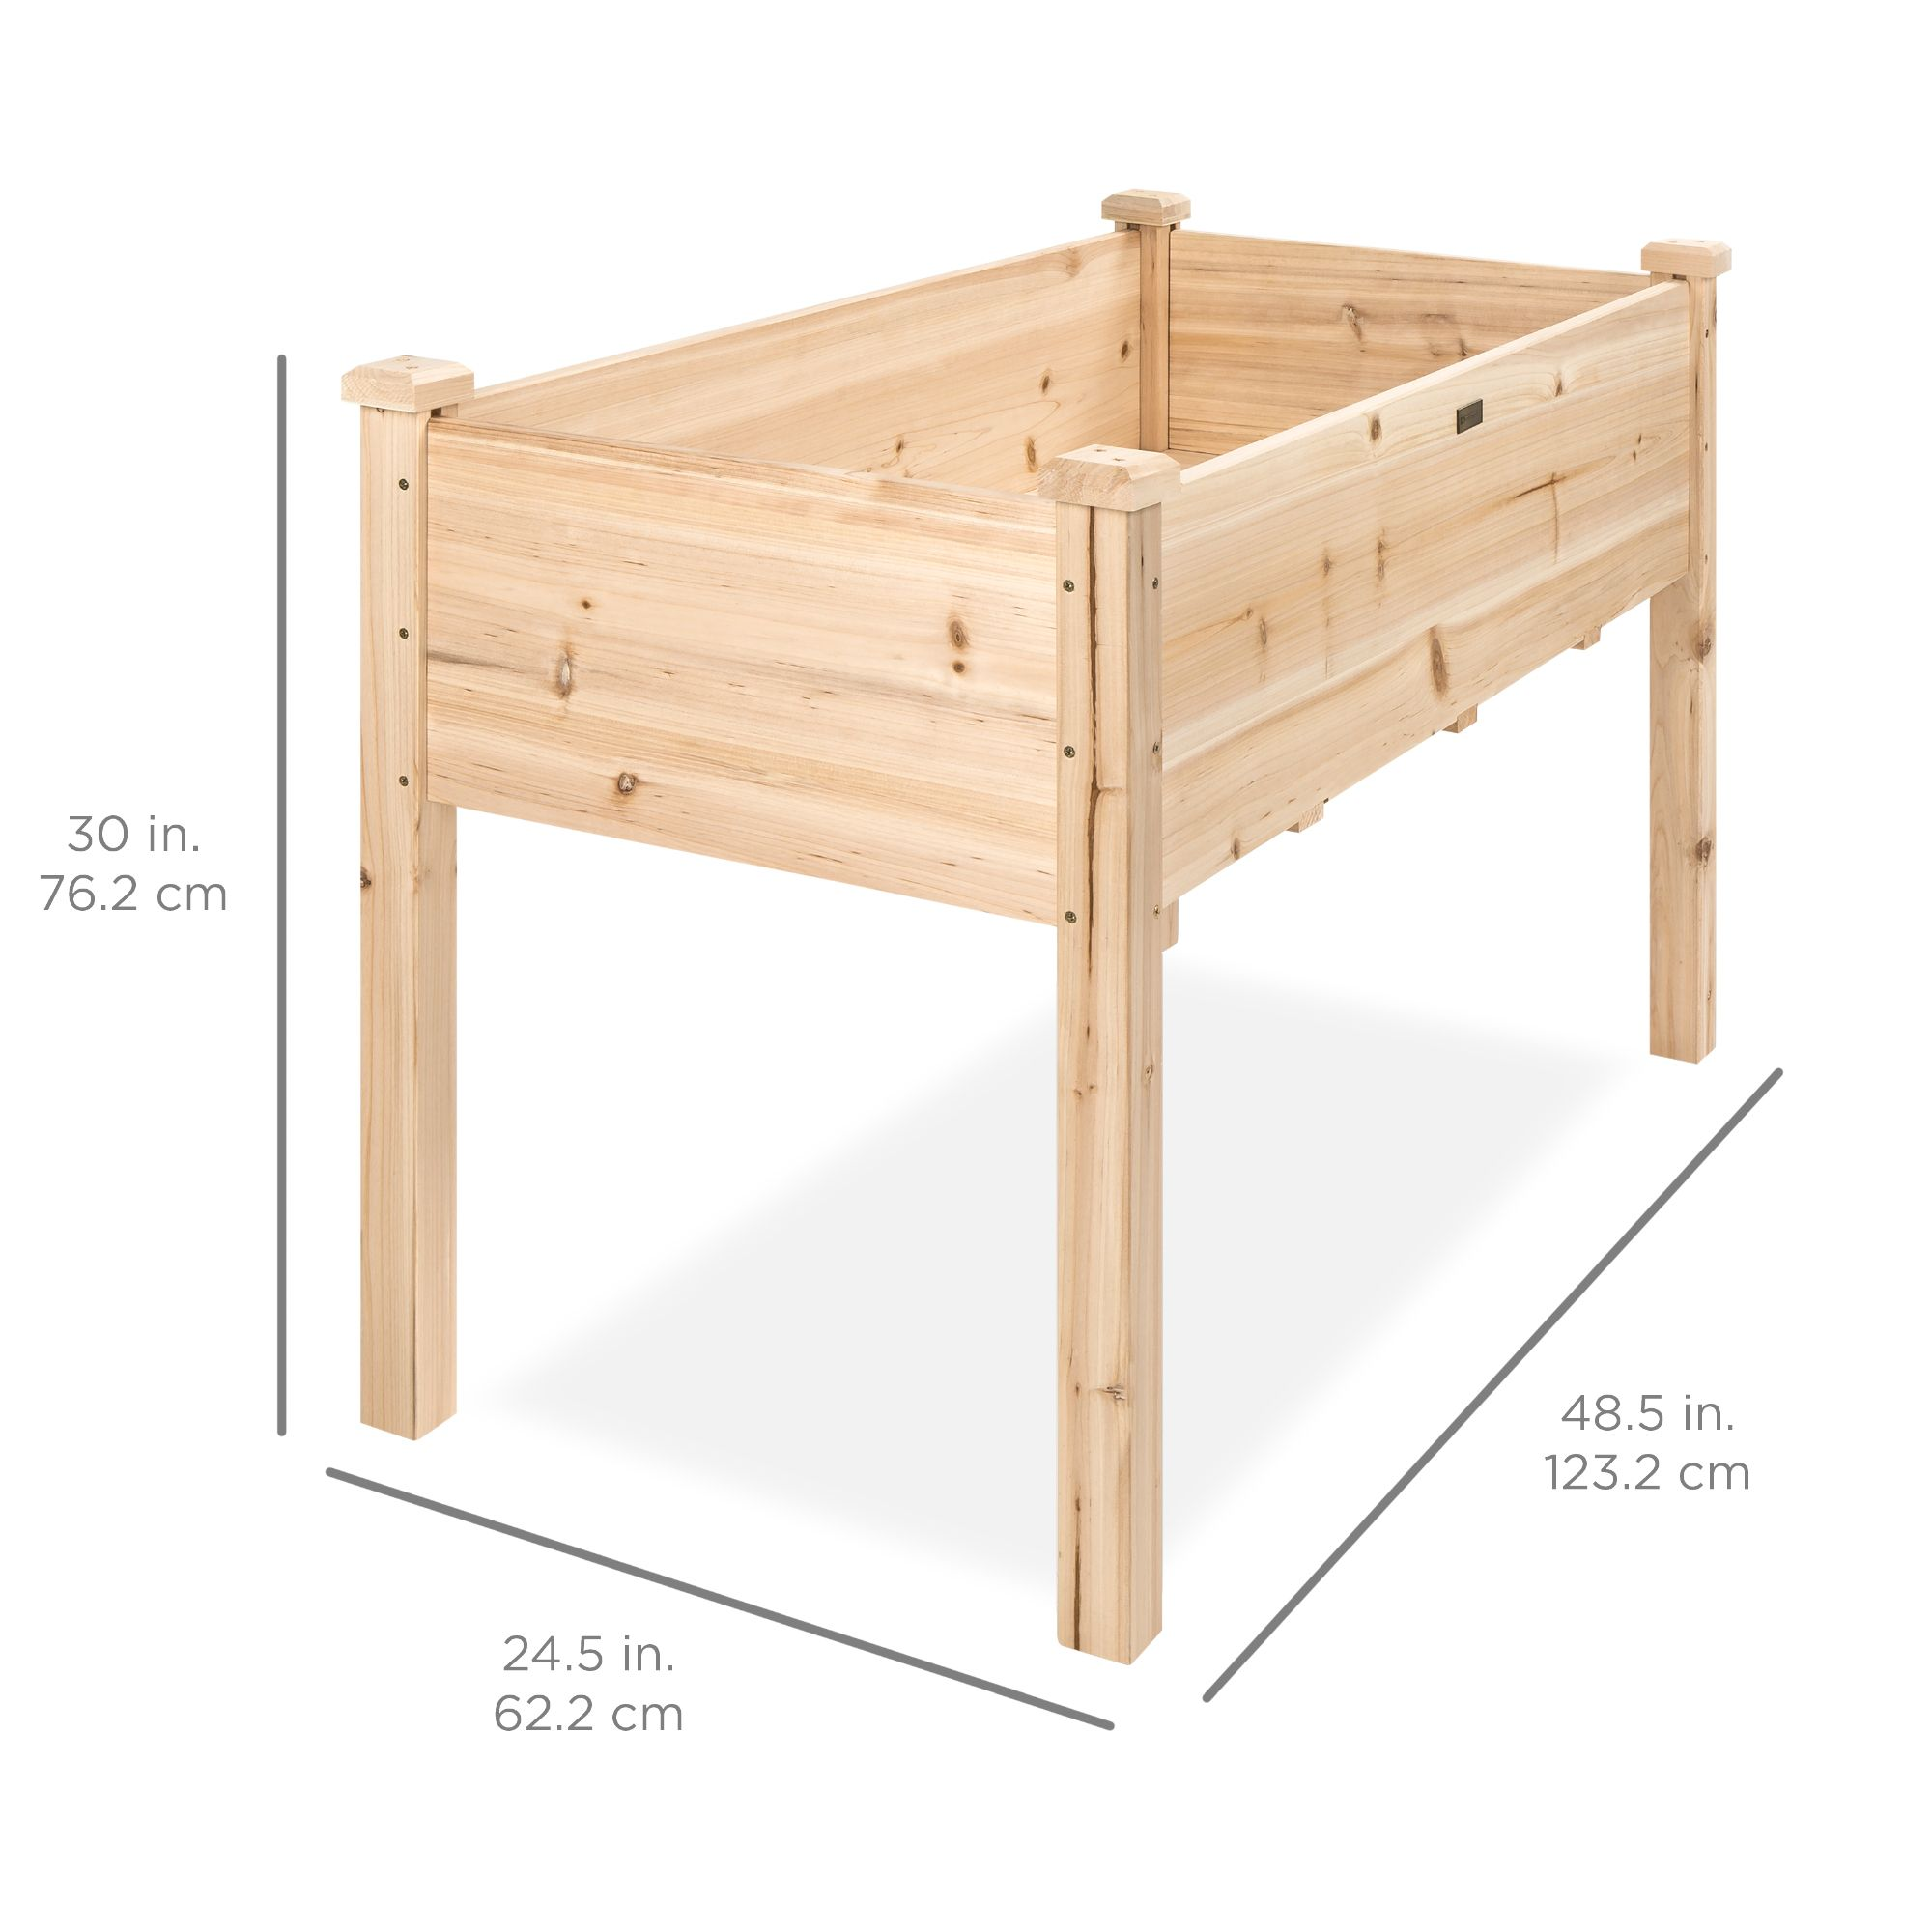 Best Choice Products 48x24x30in Elevated Wood Planter Garden Bed Box Stand for Backyard, Patio - Natural - Walmart.com